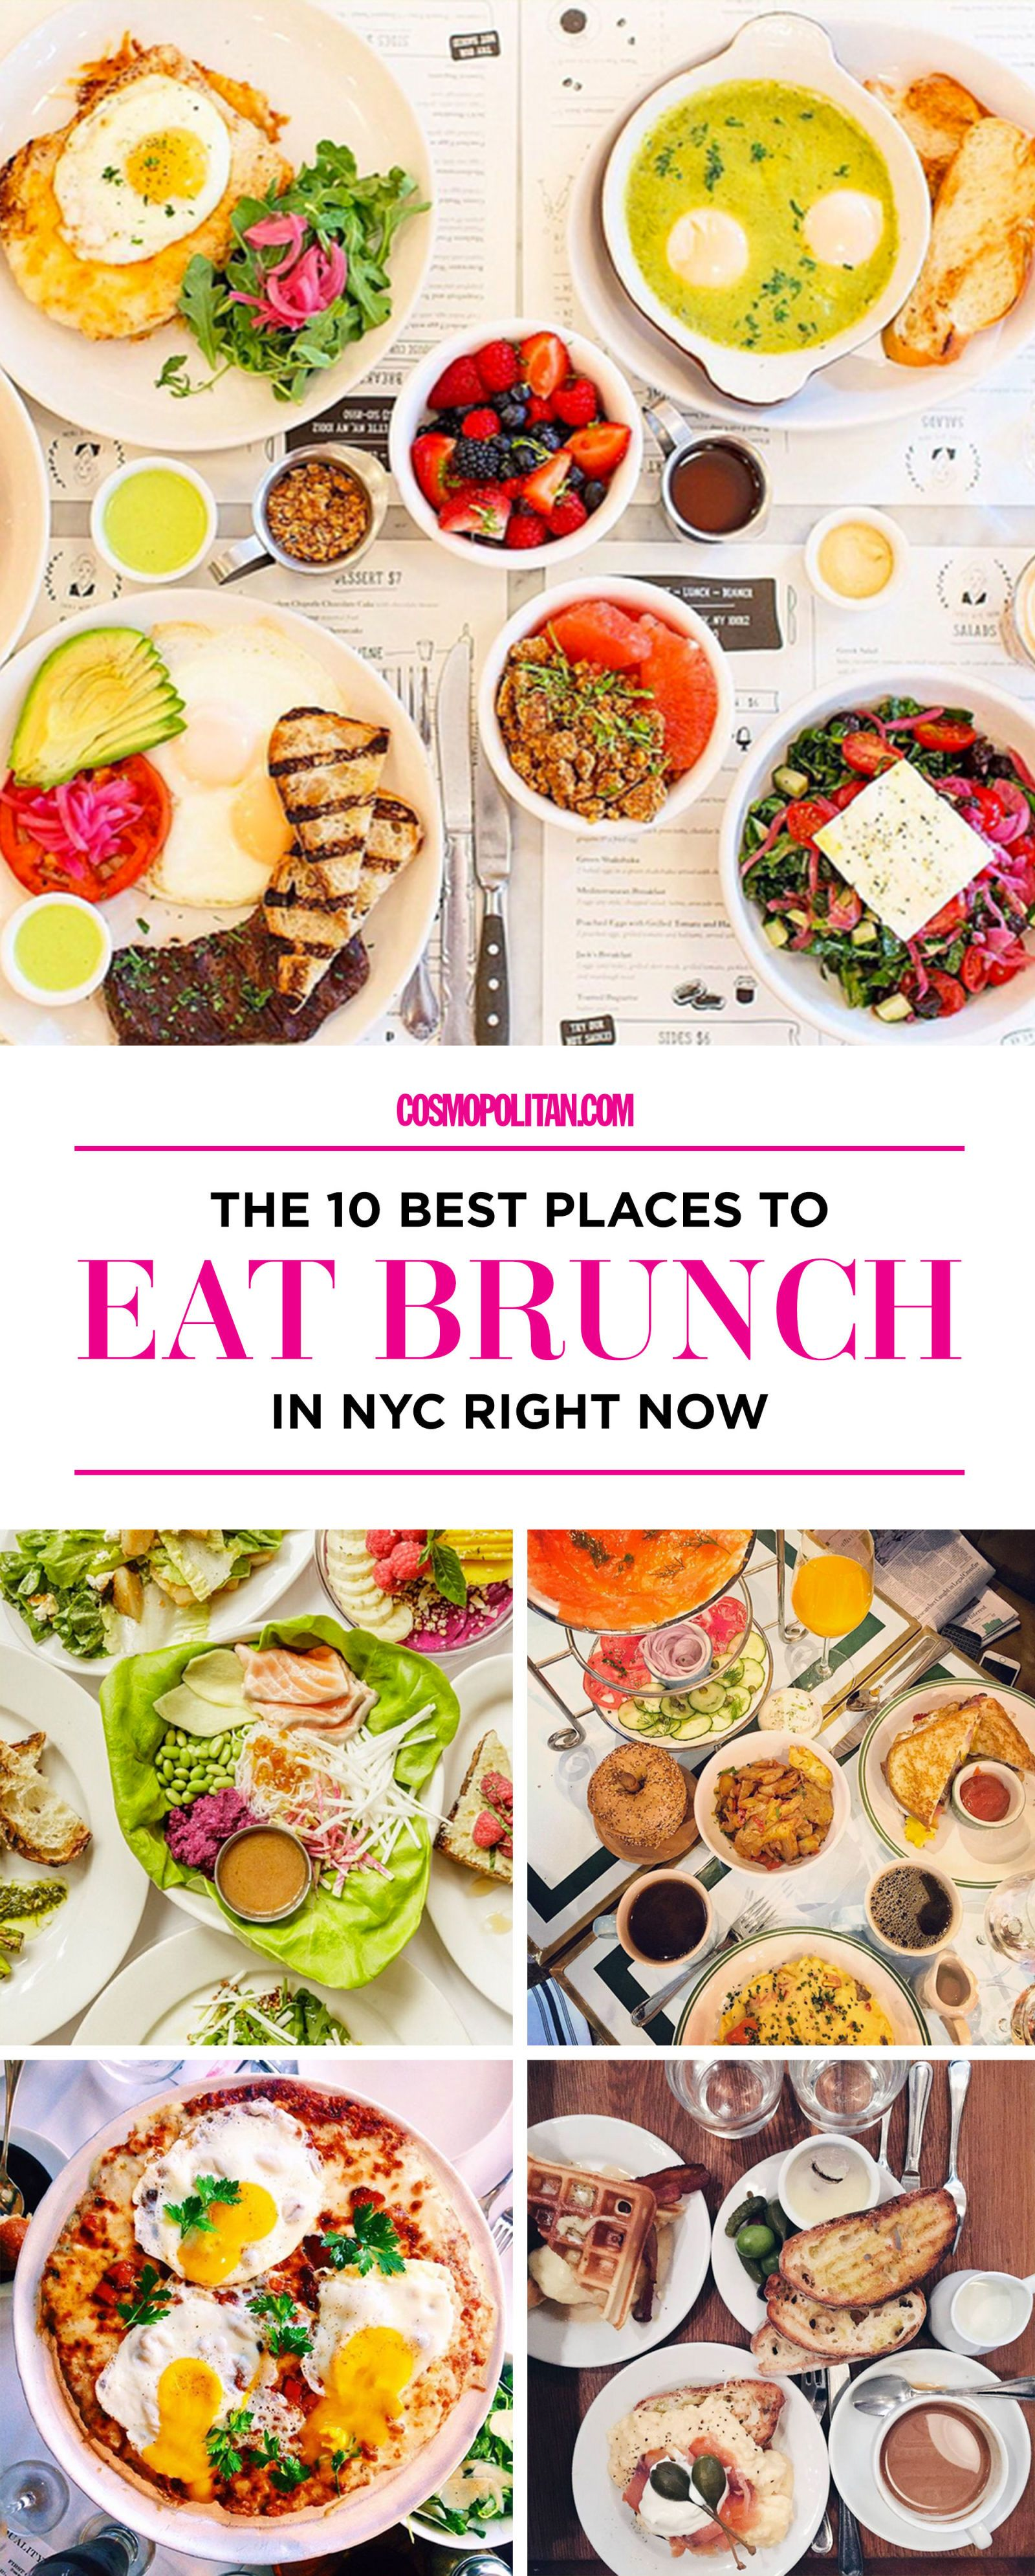 PSA: These Are The 25 Best Places To Eat Brunch In NYC